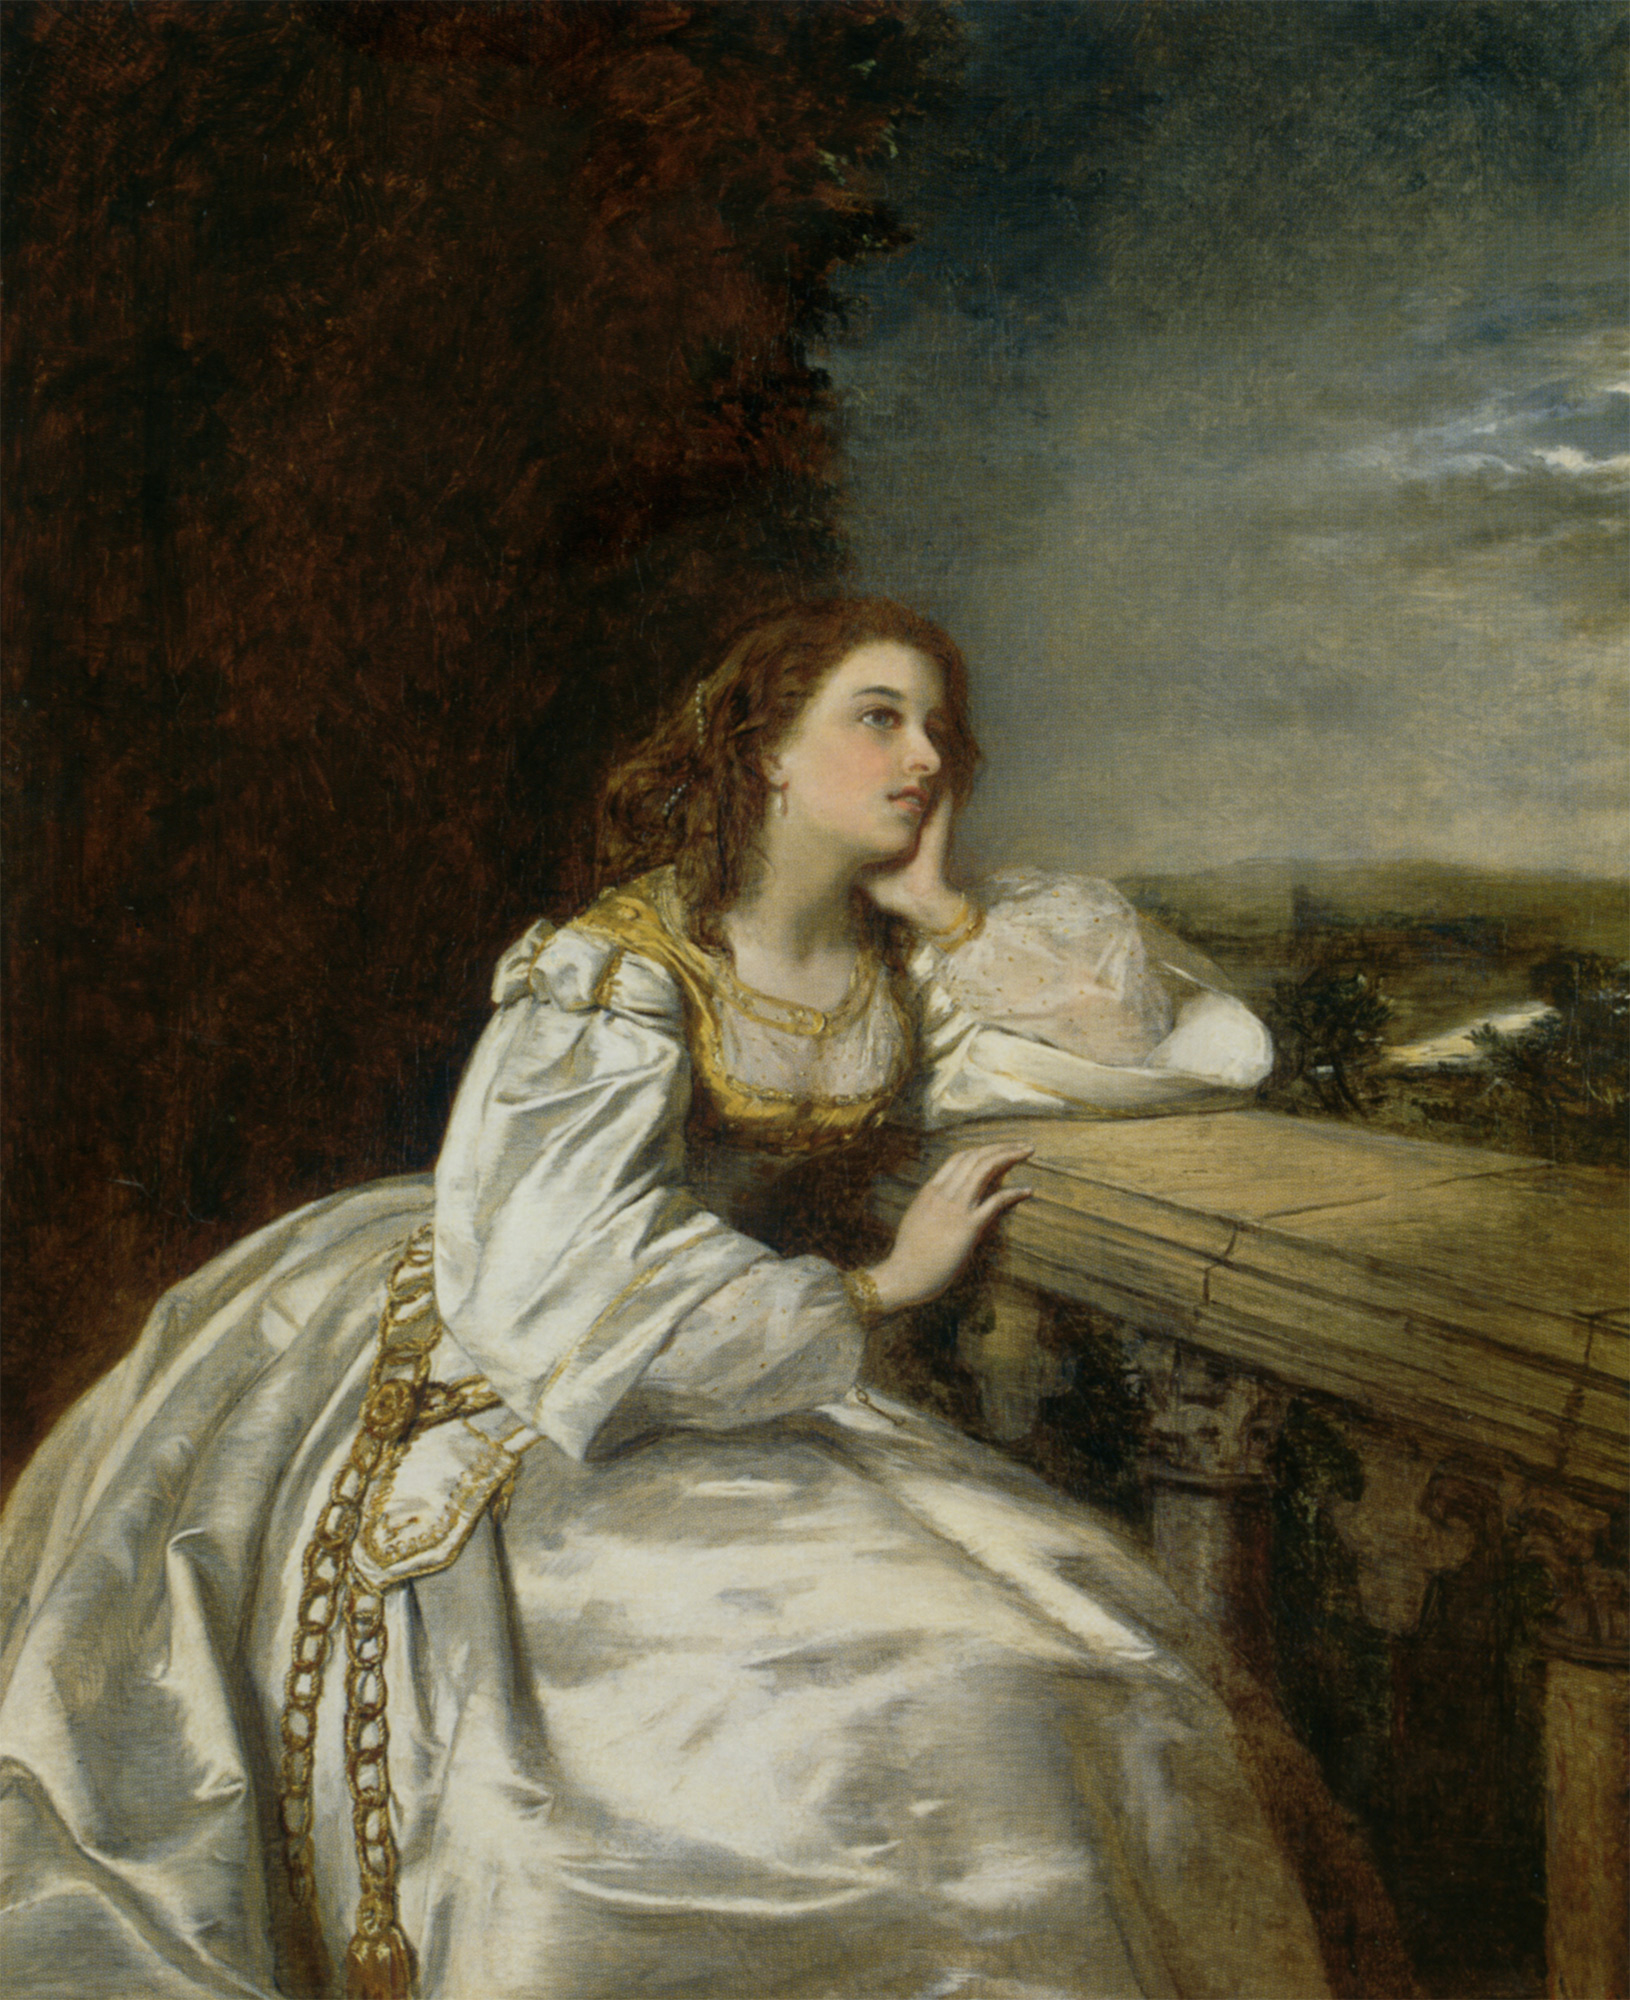 Juliet, 'O That I Were A Glove Upon That Hand' :: William Powell Frith  - Art scenes from literary works ôîòî